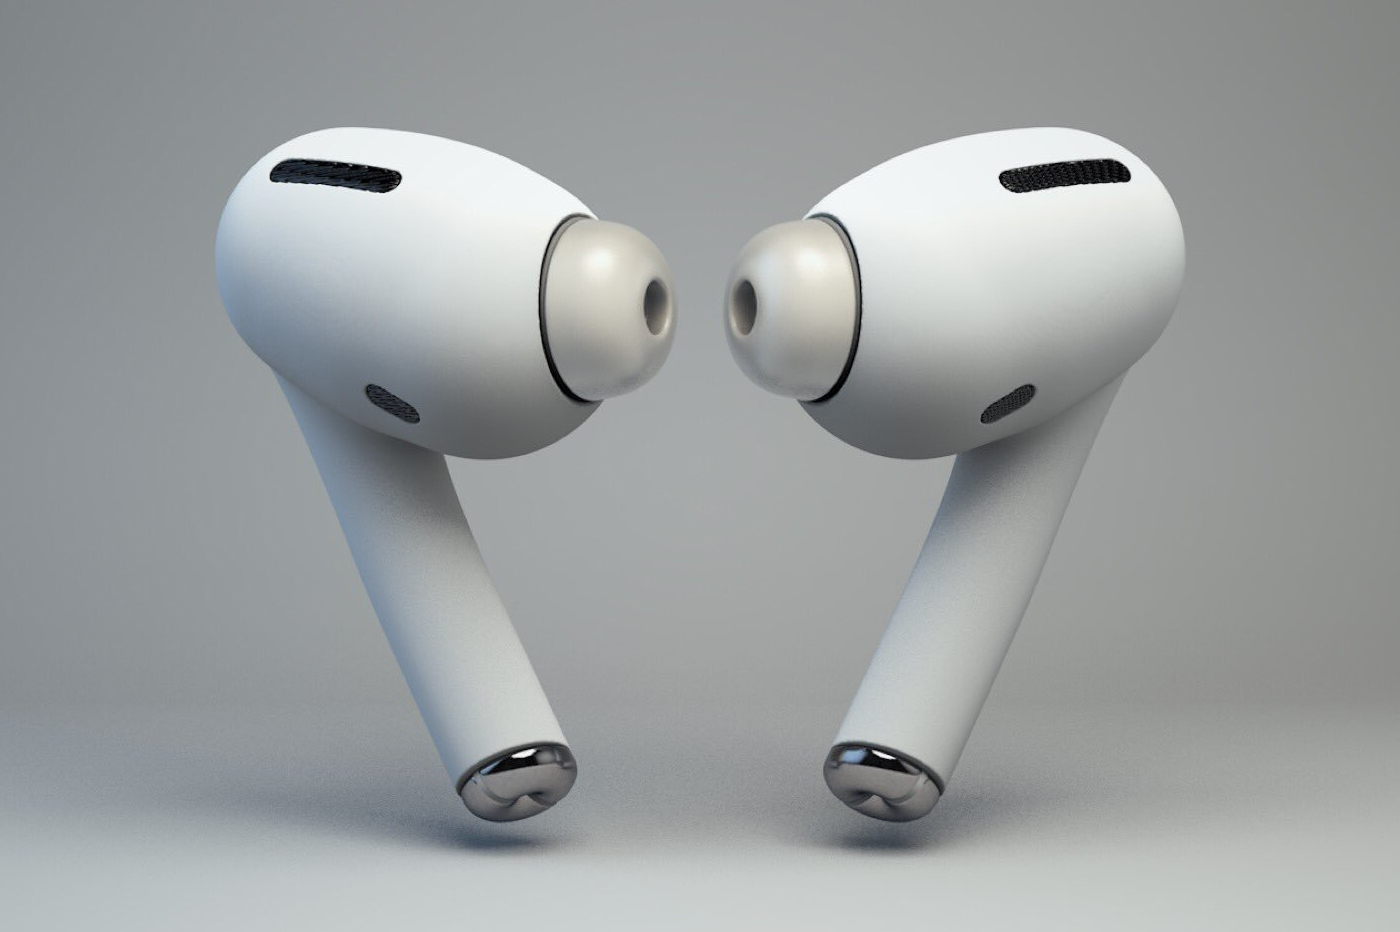 concept AirPods 3